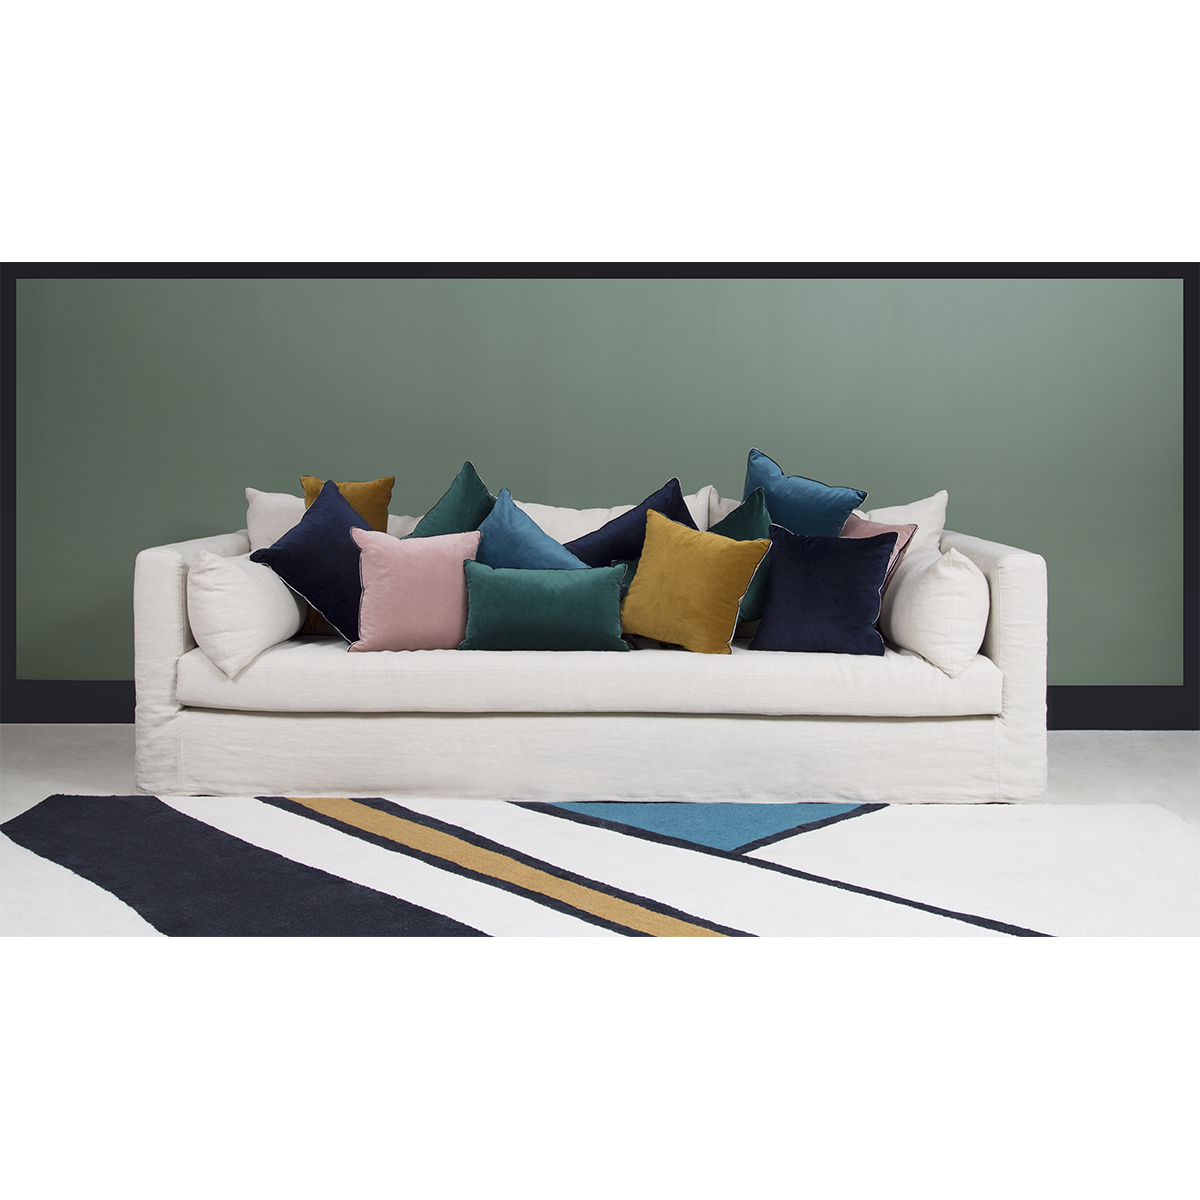 The sofa, the centerpiece of your living room